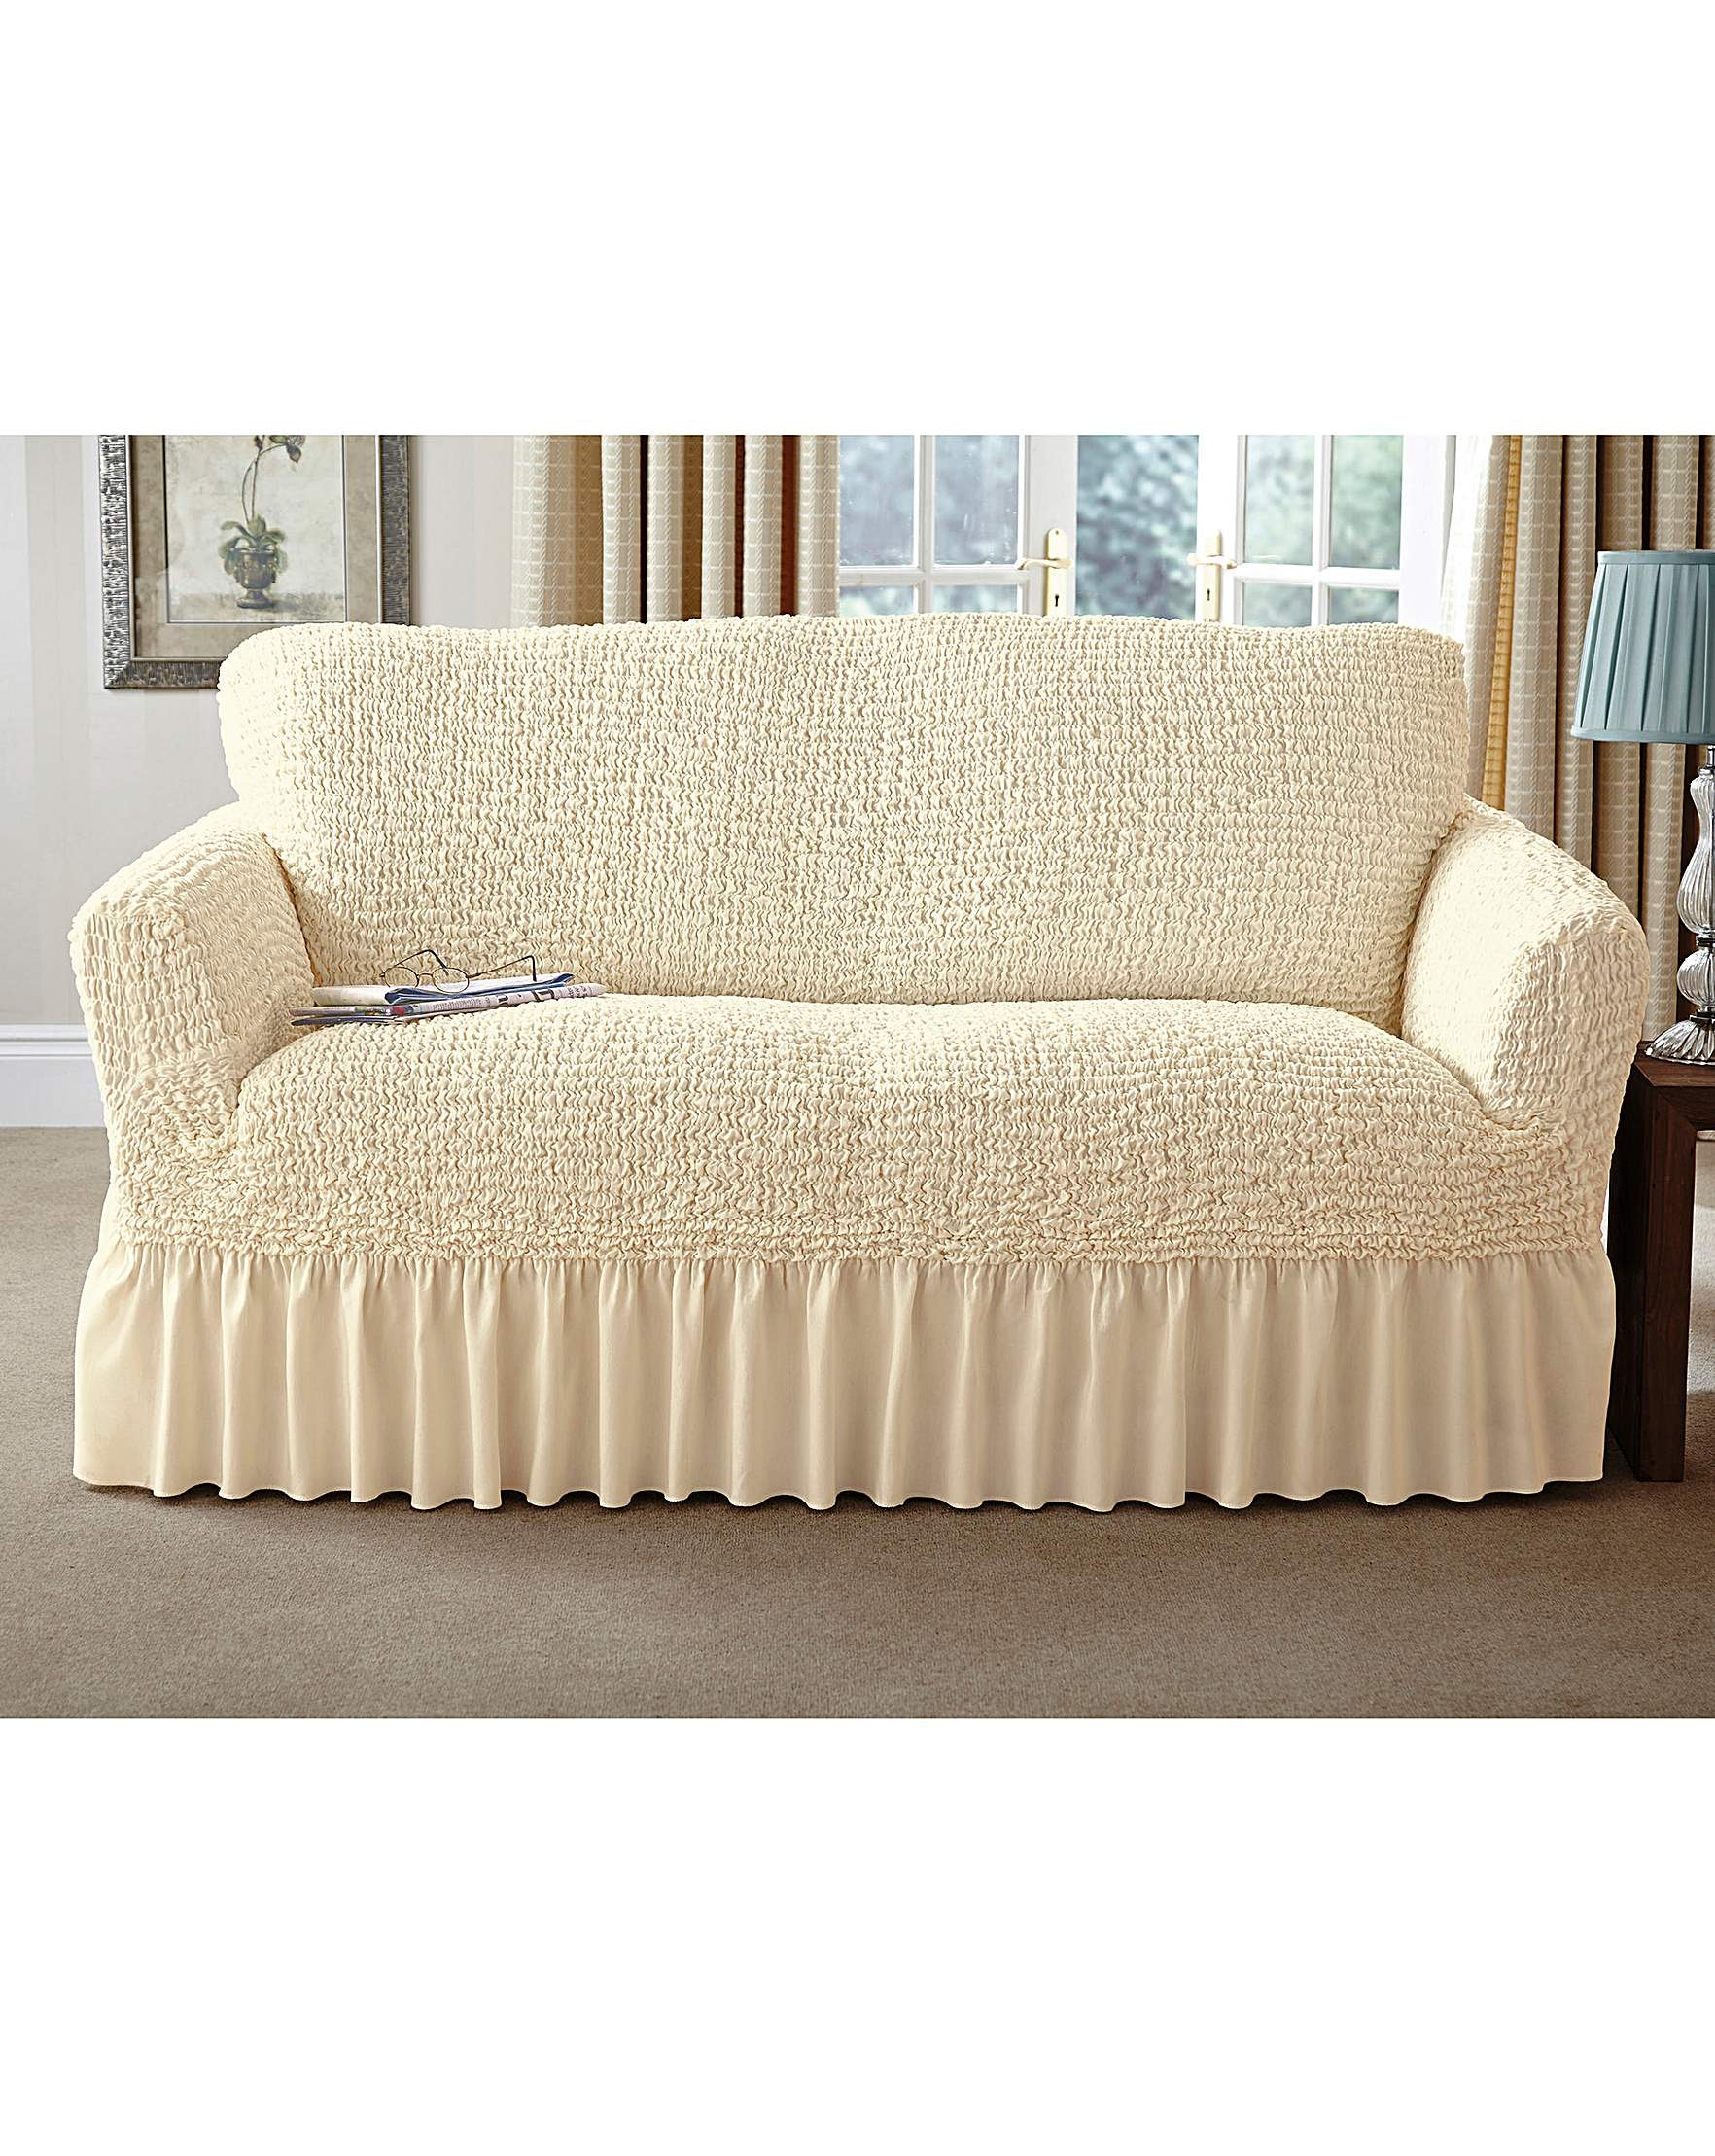 Settee covers Loose sofa covers Replacement sofa covers